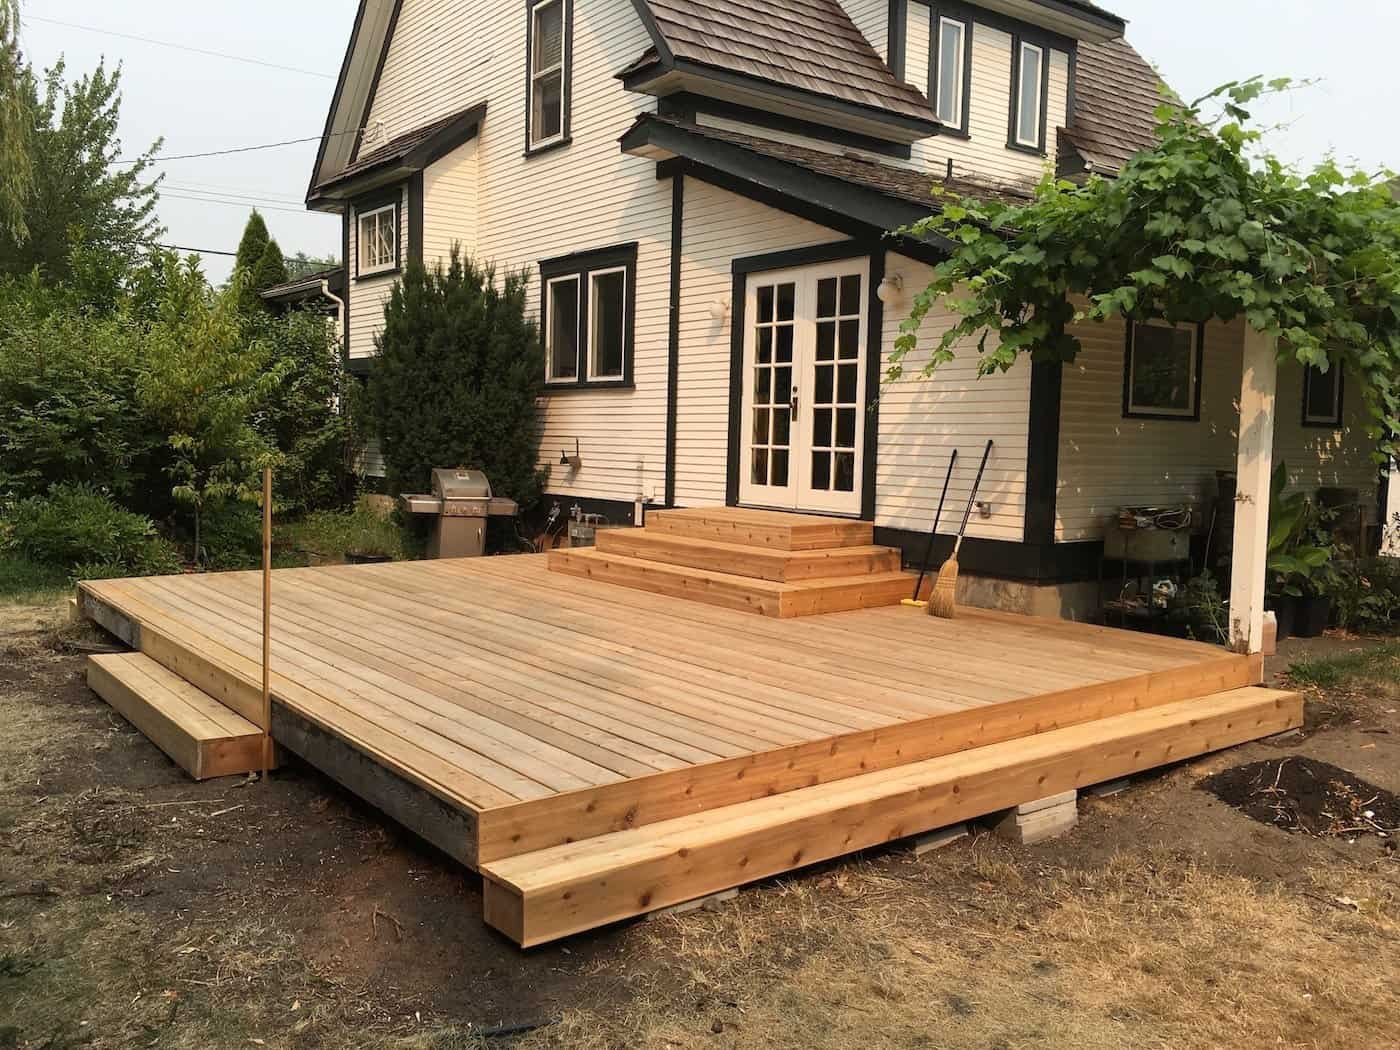 Home Depot Cedar Deck Boards Diy Deck Project Installing Beautiful New Cedar Decking To